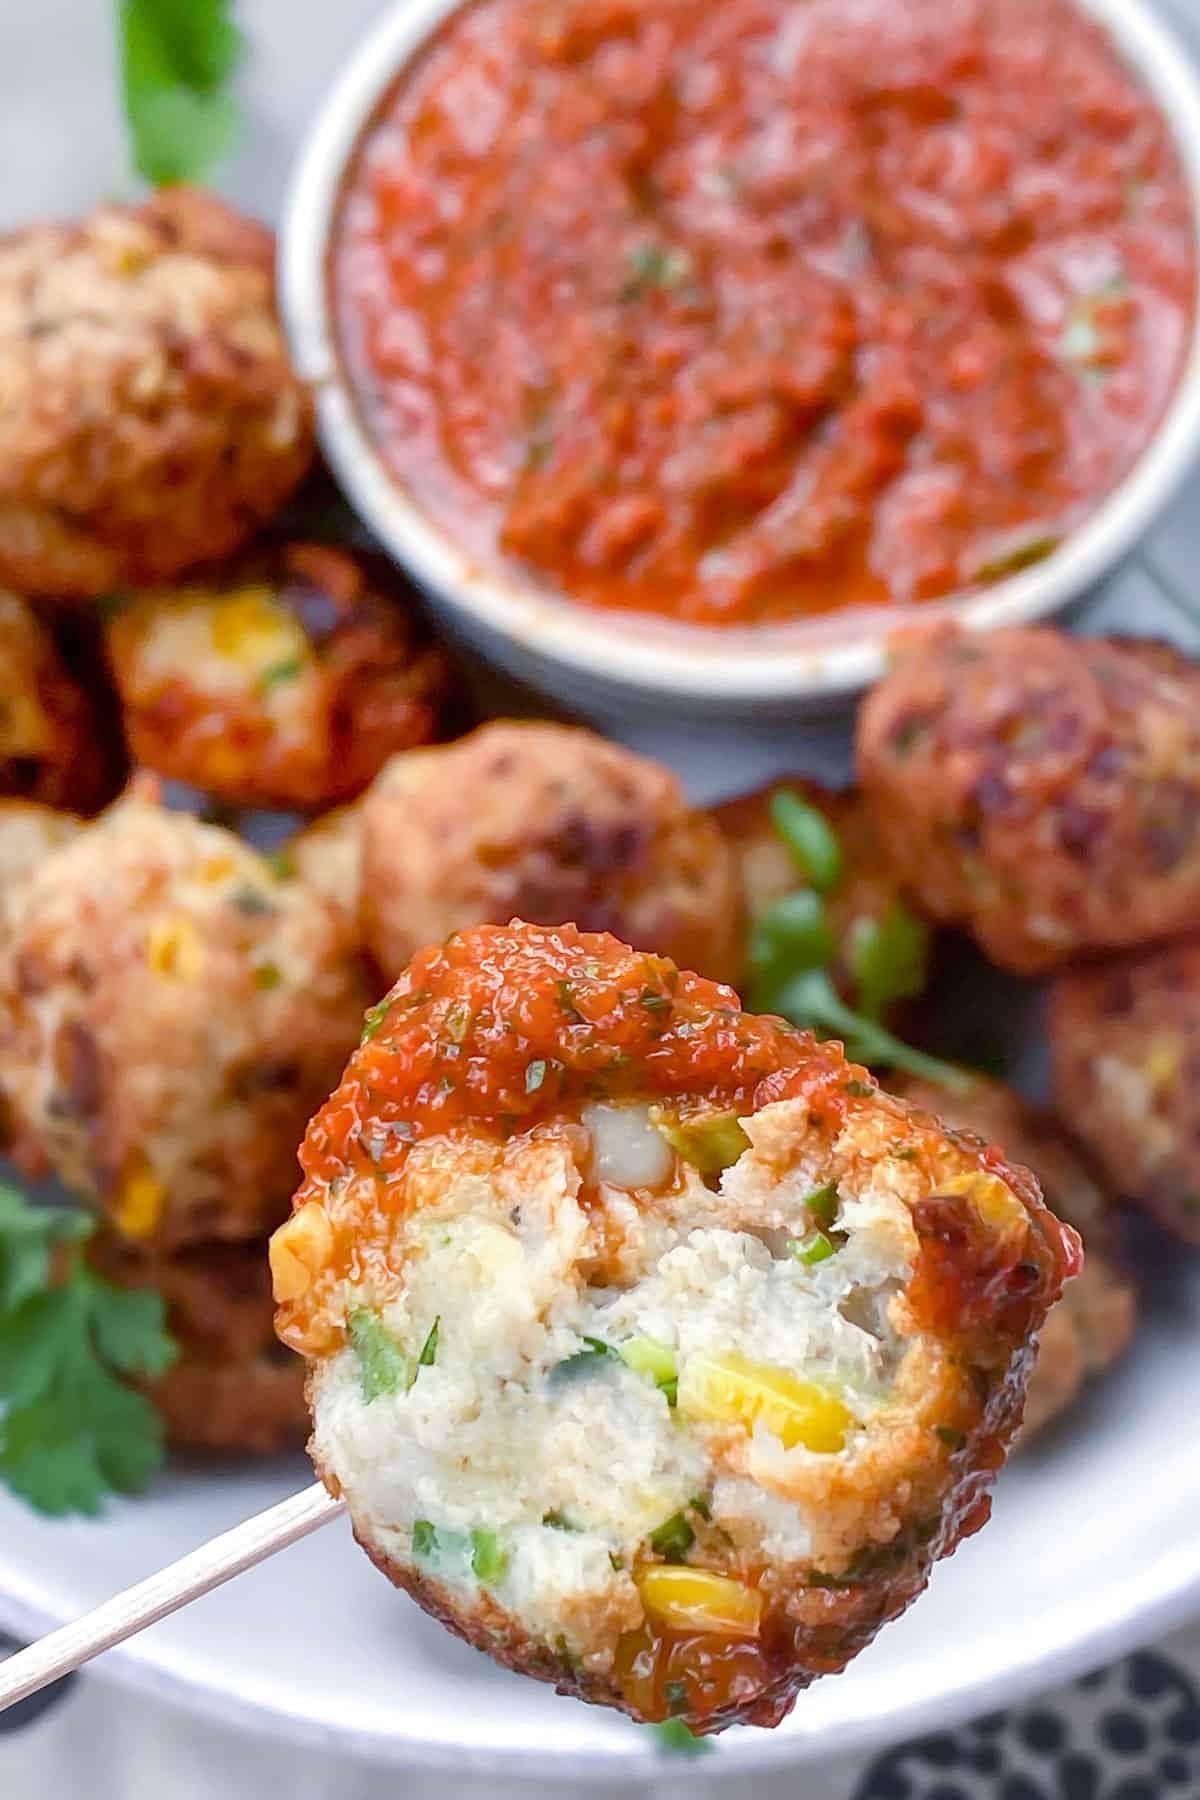 Close up of a turkey corn meatball with a bite take out of it, the platter of meatballs and red pepper sauce in the background